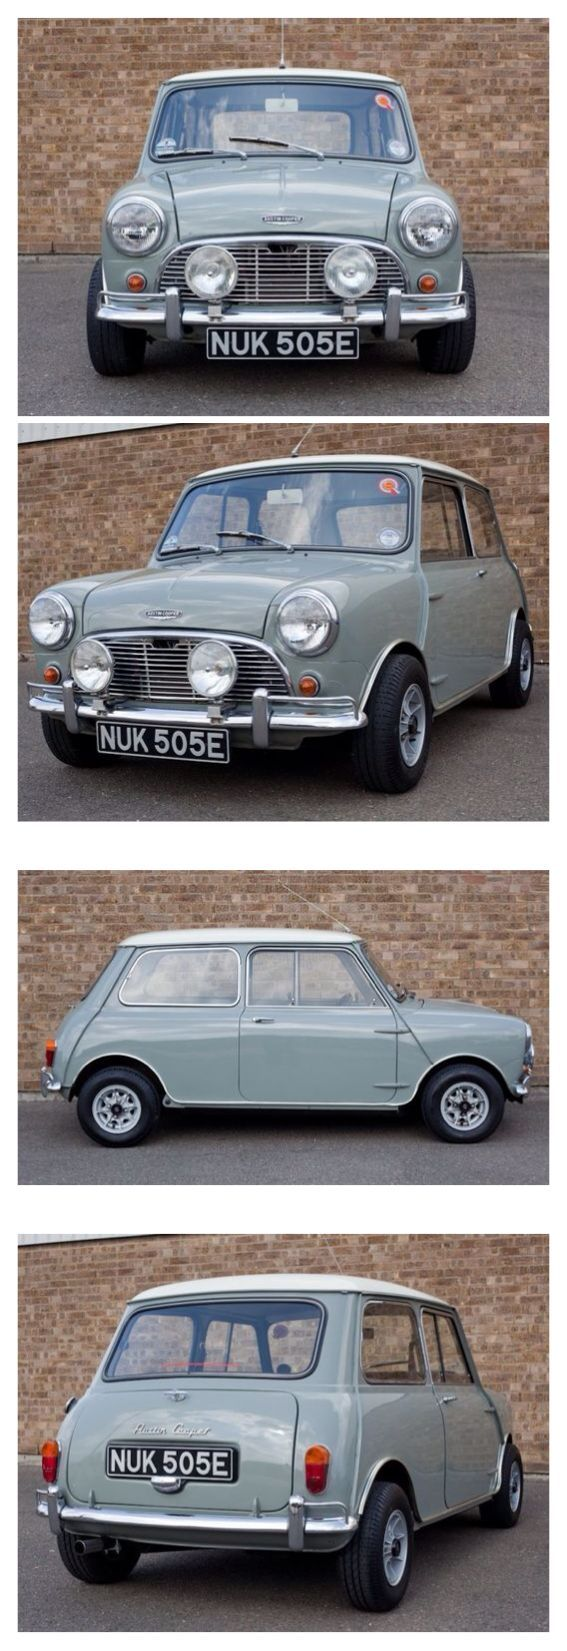 1967 austin mini cooper four wheel fully independent suspension based on rubber cones as non linear springs